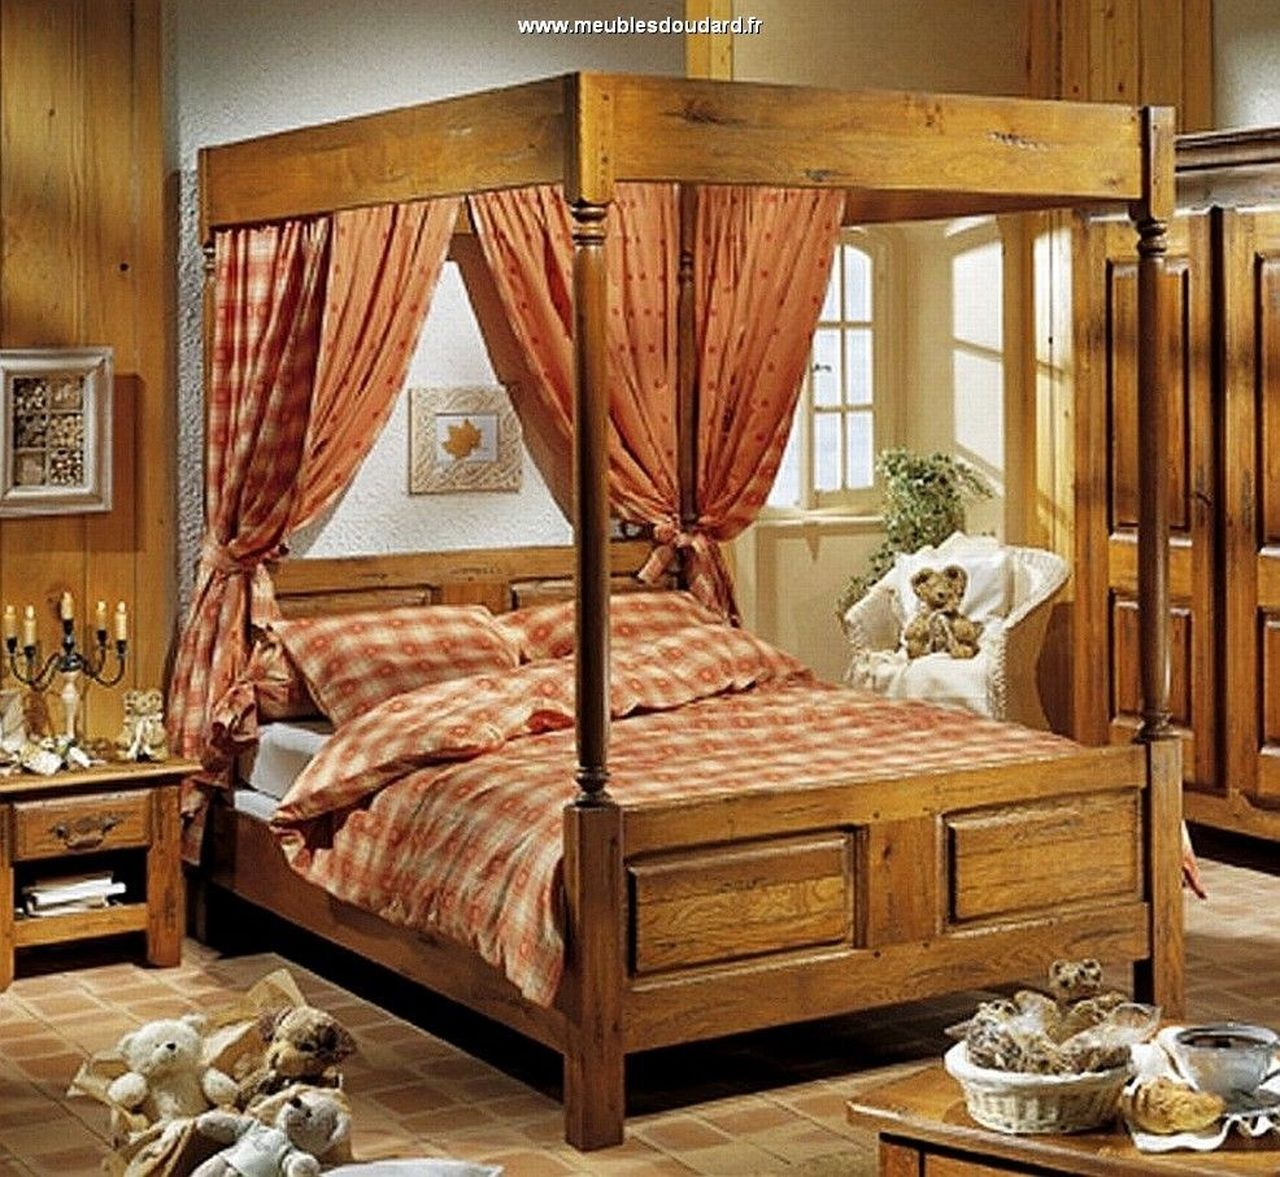 bois de lit baldaquin en bois massif antiquaire. Black Bedroom Furniture Sets. Home Design Ideas